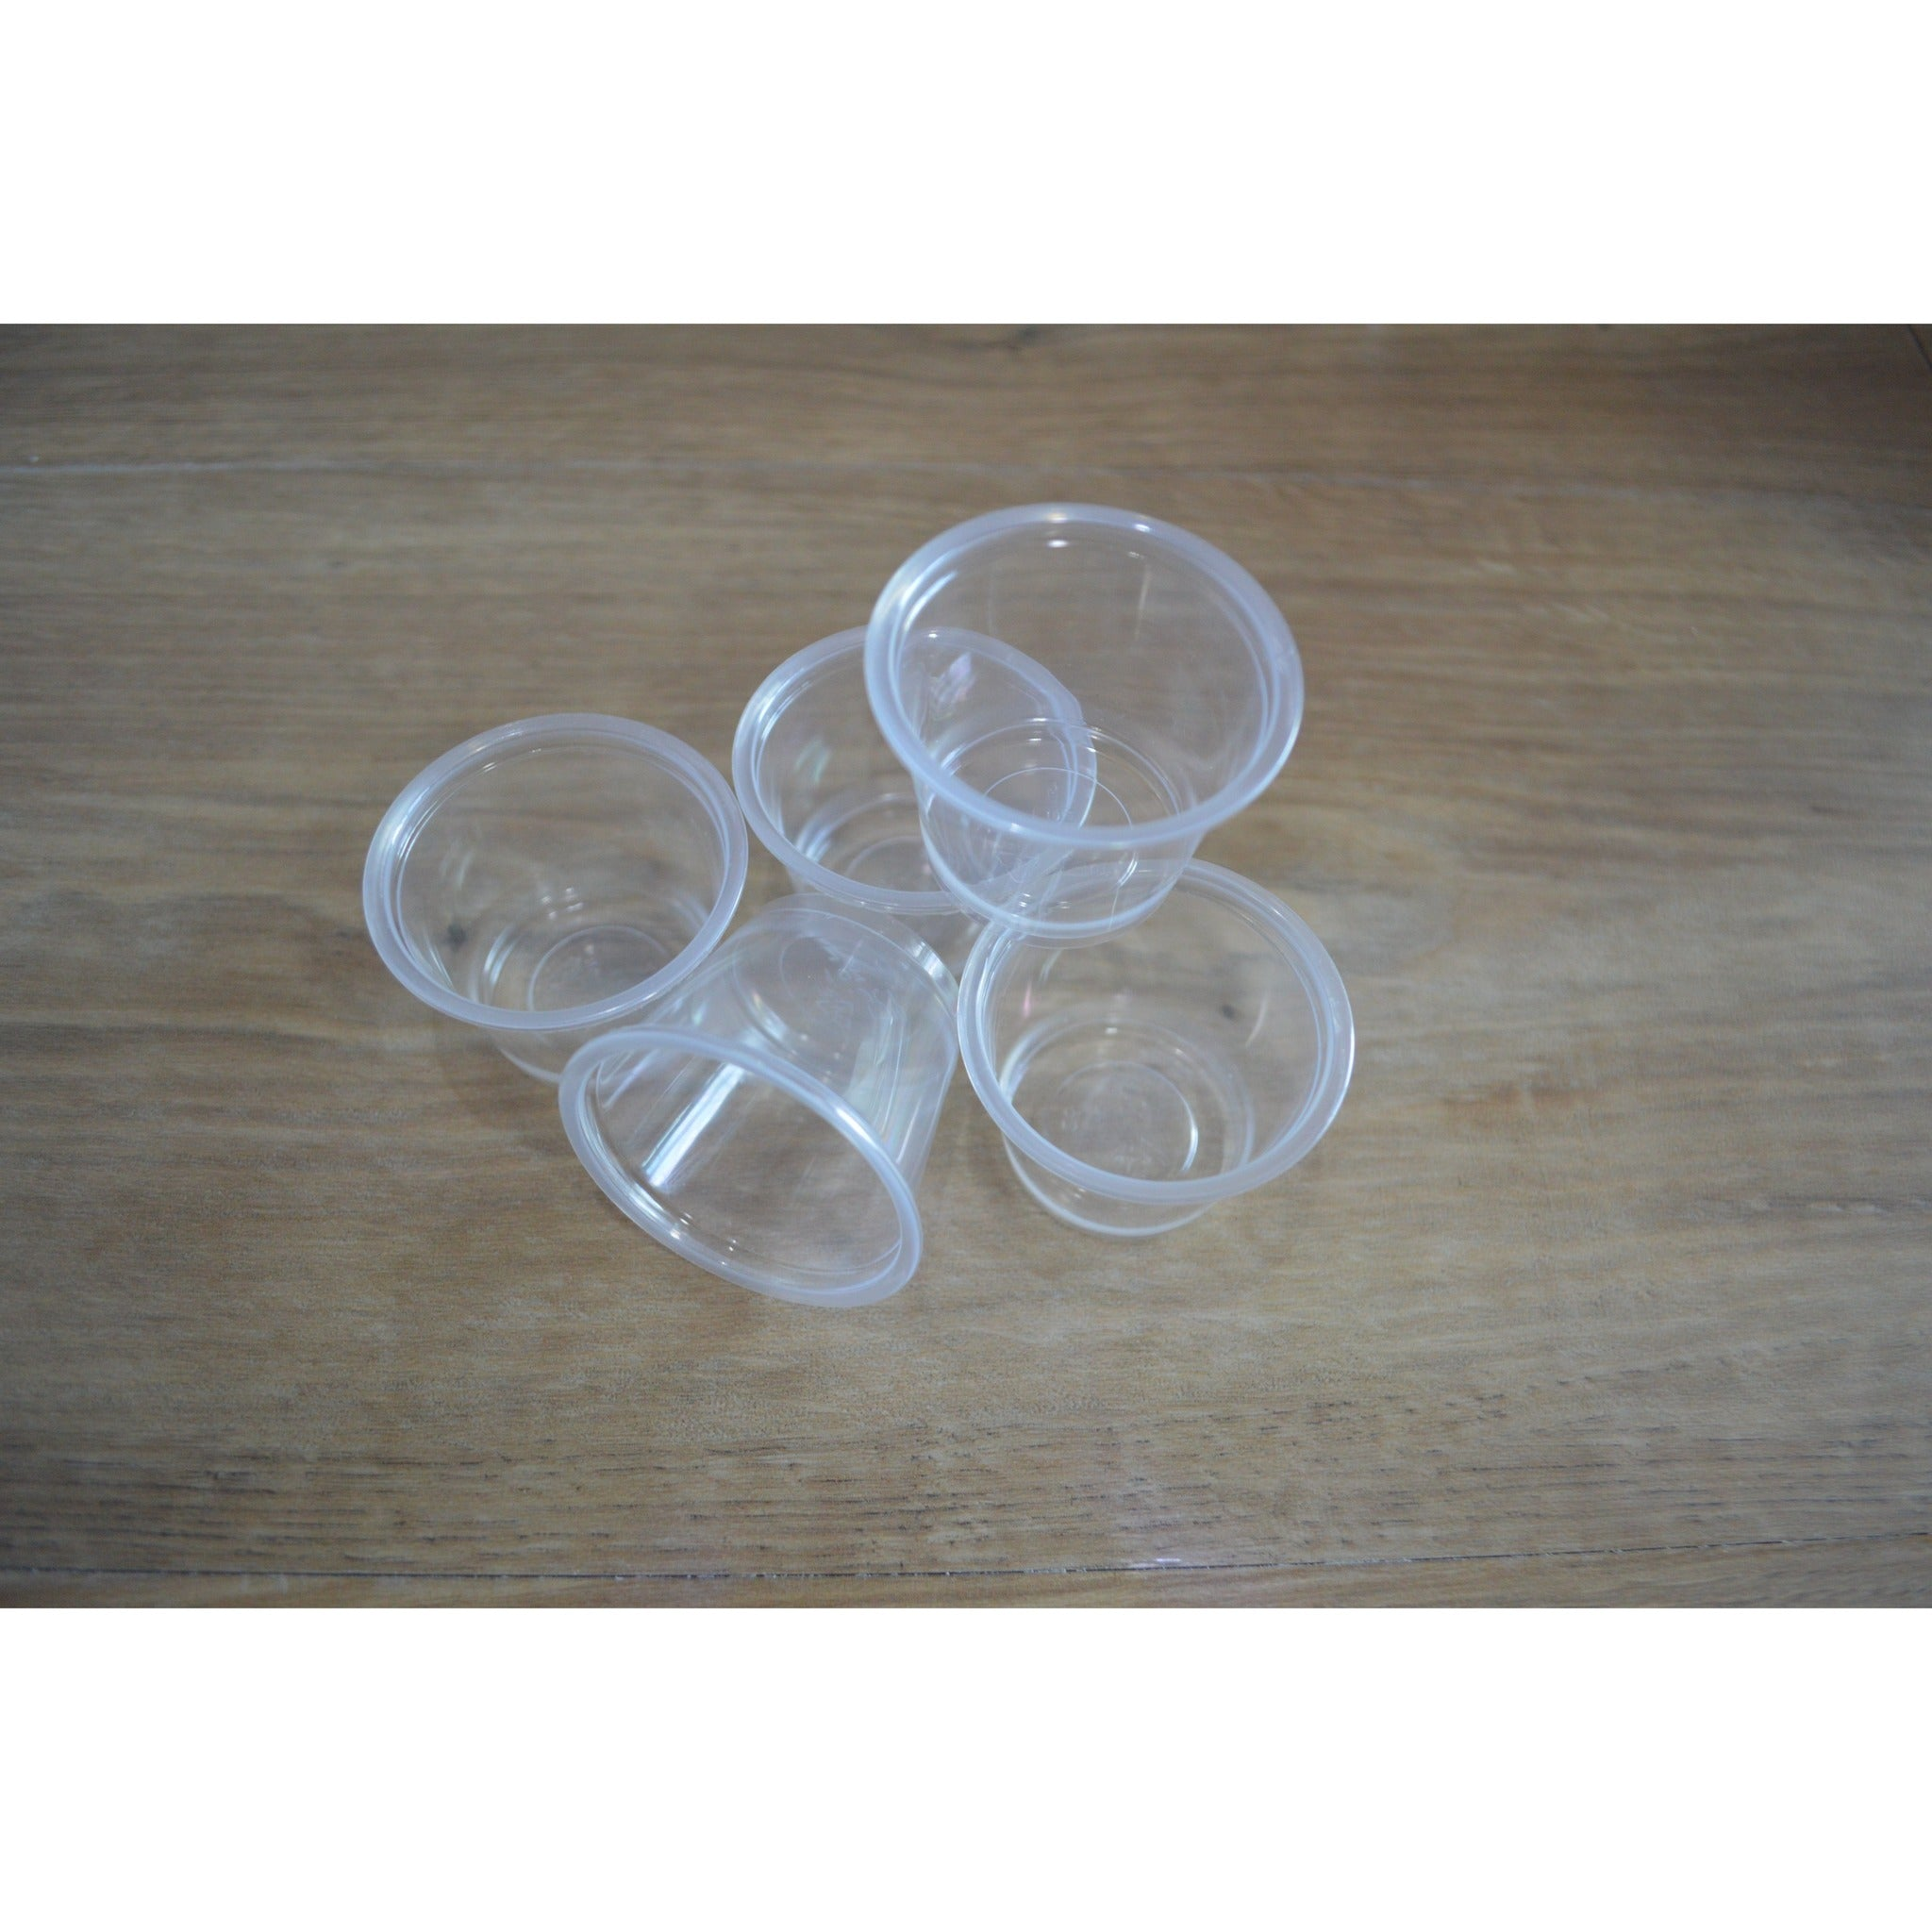 4 OZ Clear Portion Cups - 2500 Pieces